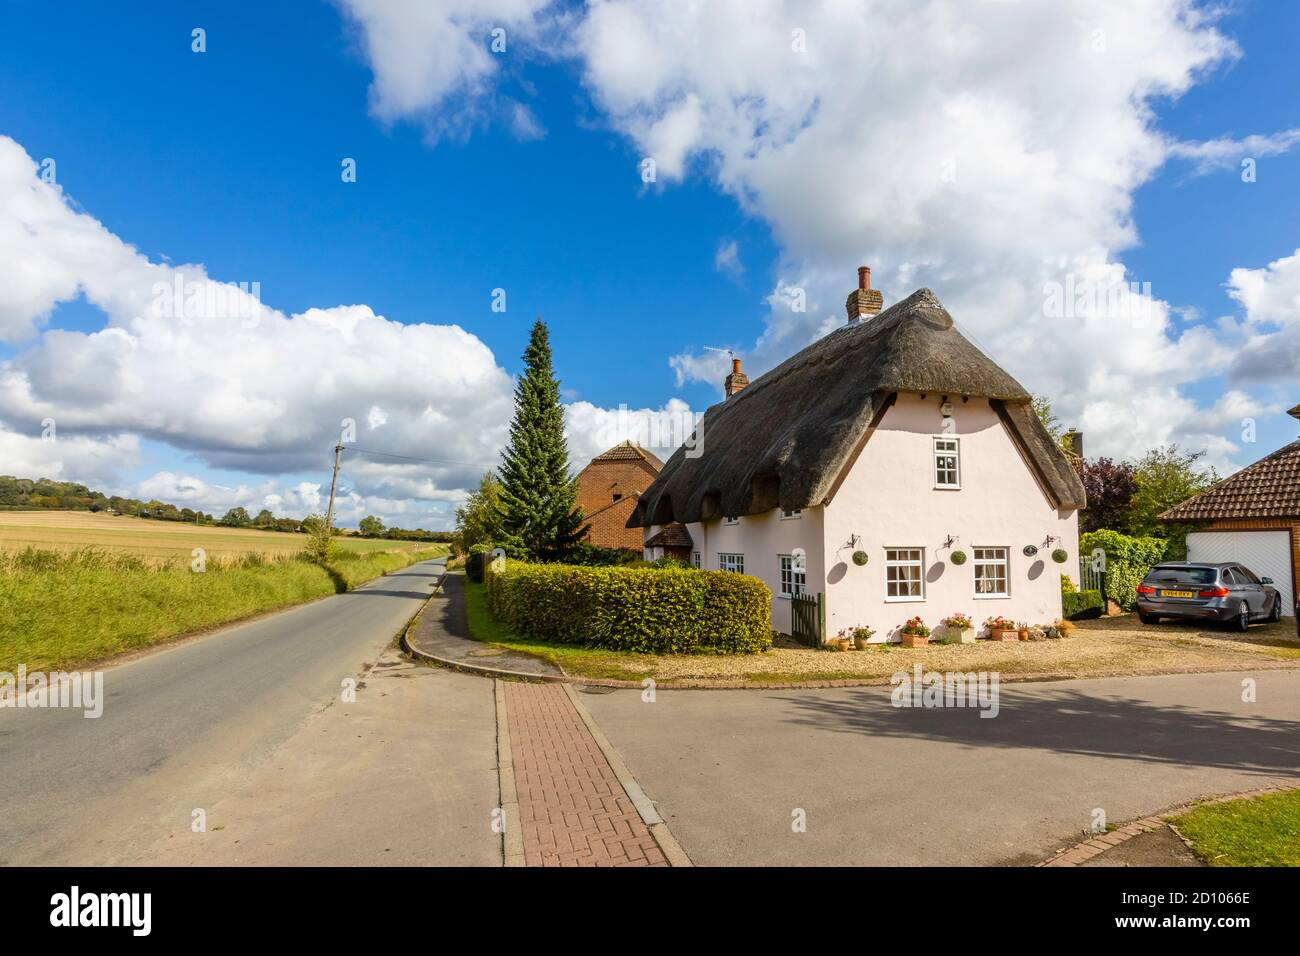 A thatched pink cottage on a rural country lane by open fields in Great Bedwyn, a village in east Wiltshire, southern England Stock Photo